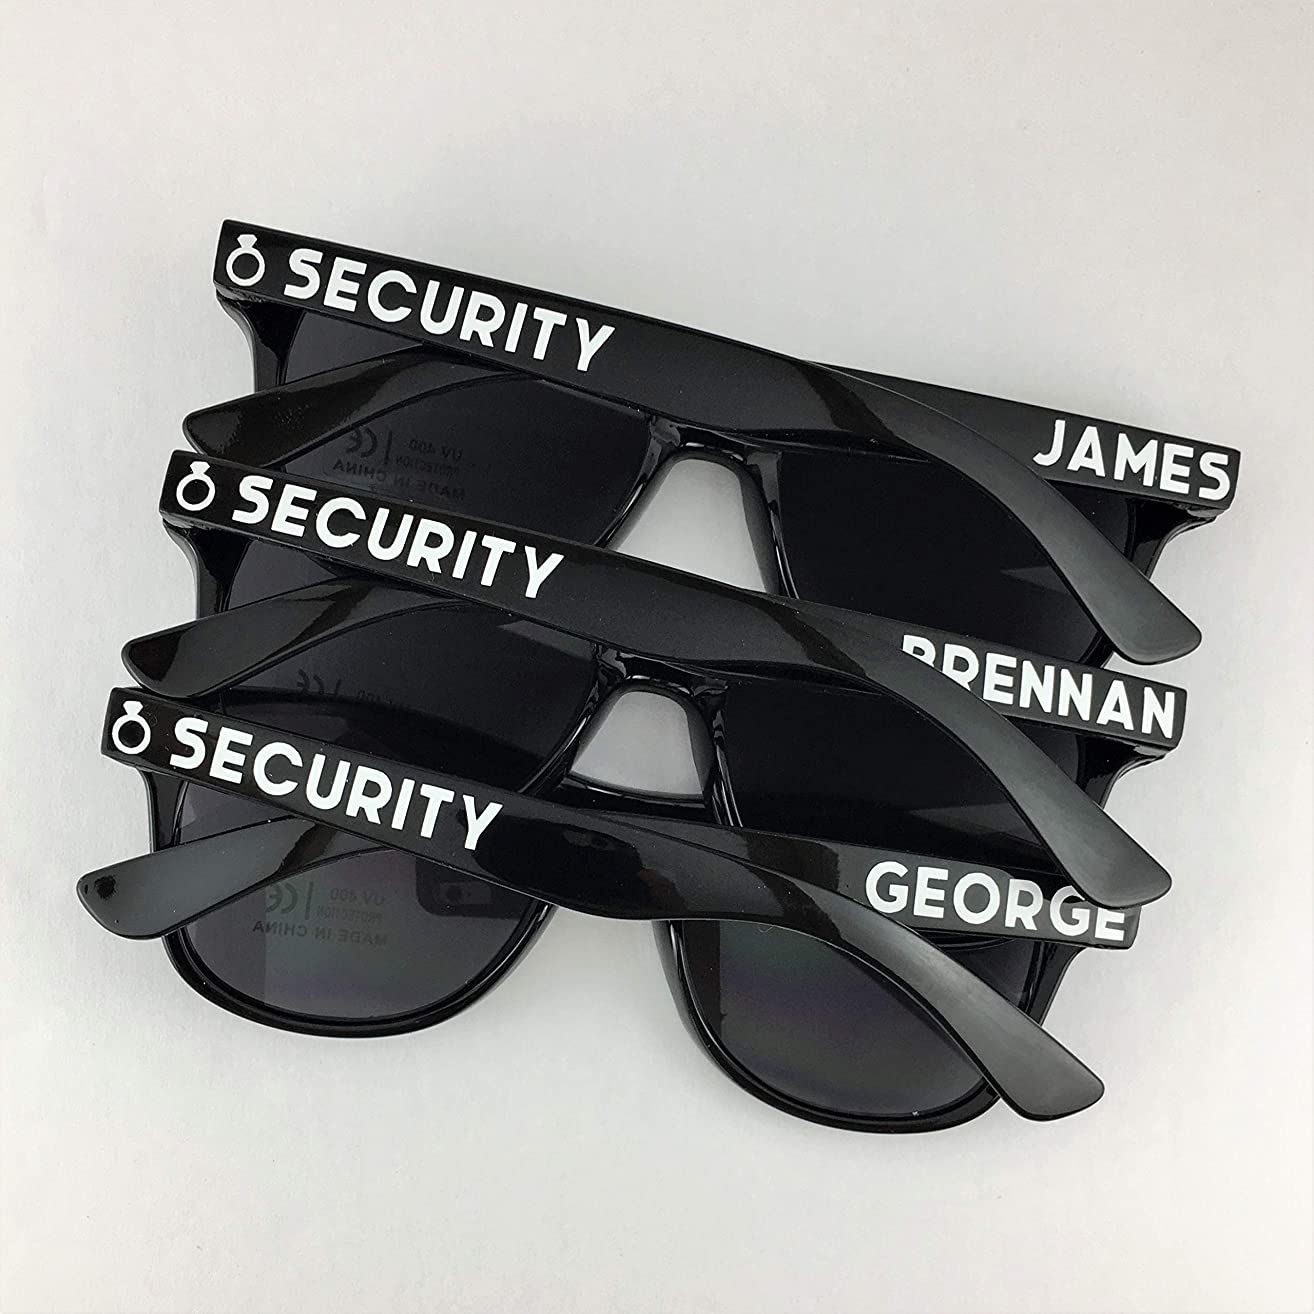 Ring Security Personalized Sunglasses - Kids Size